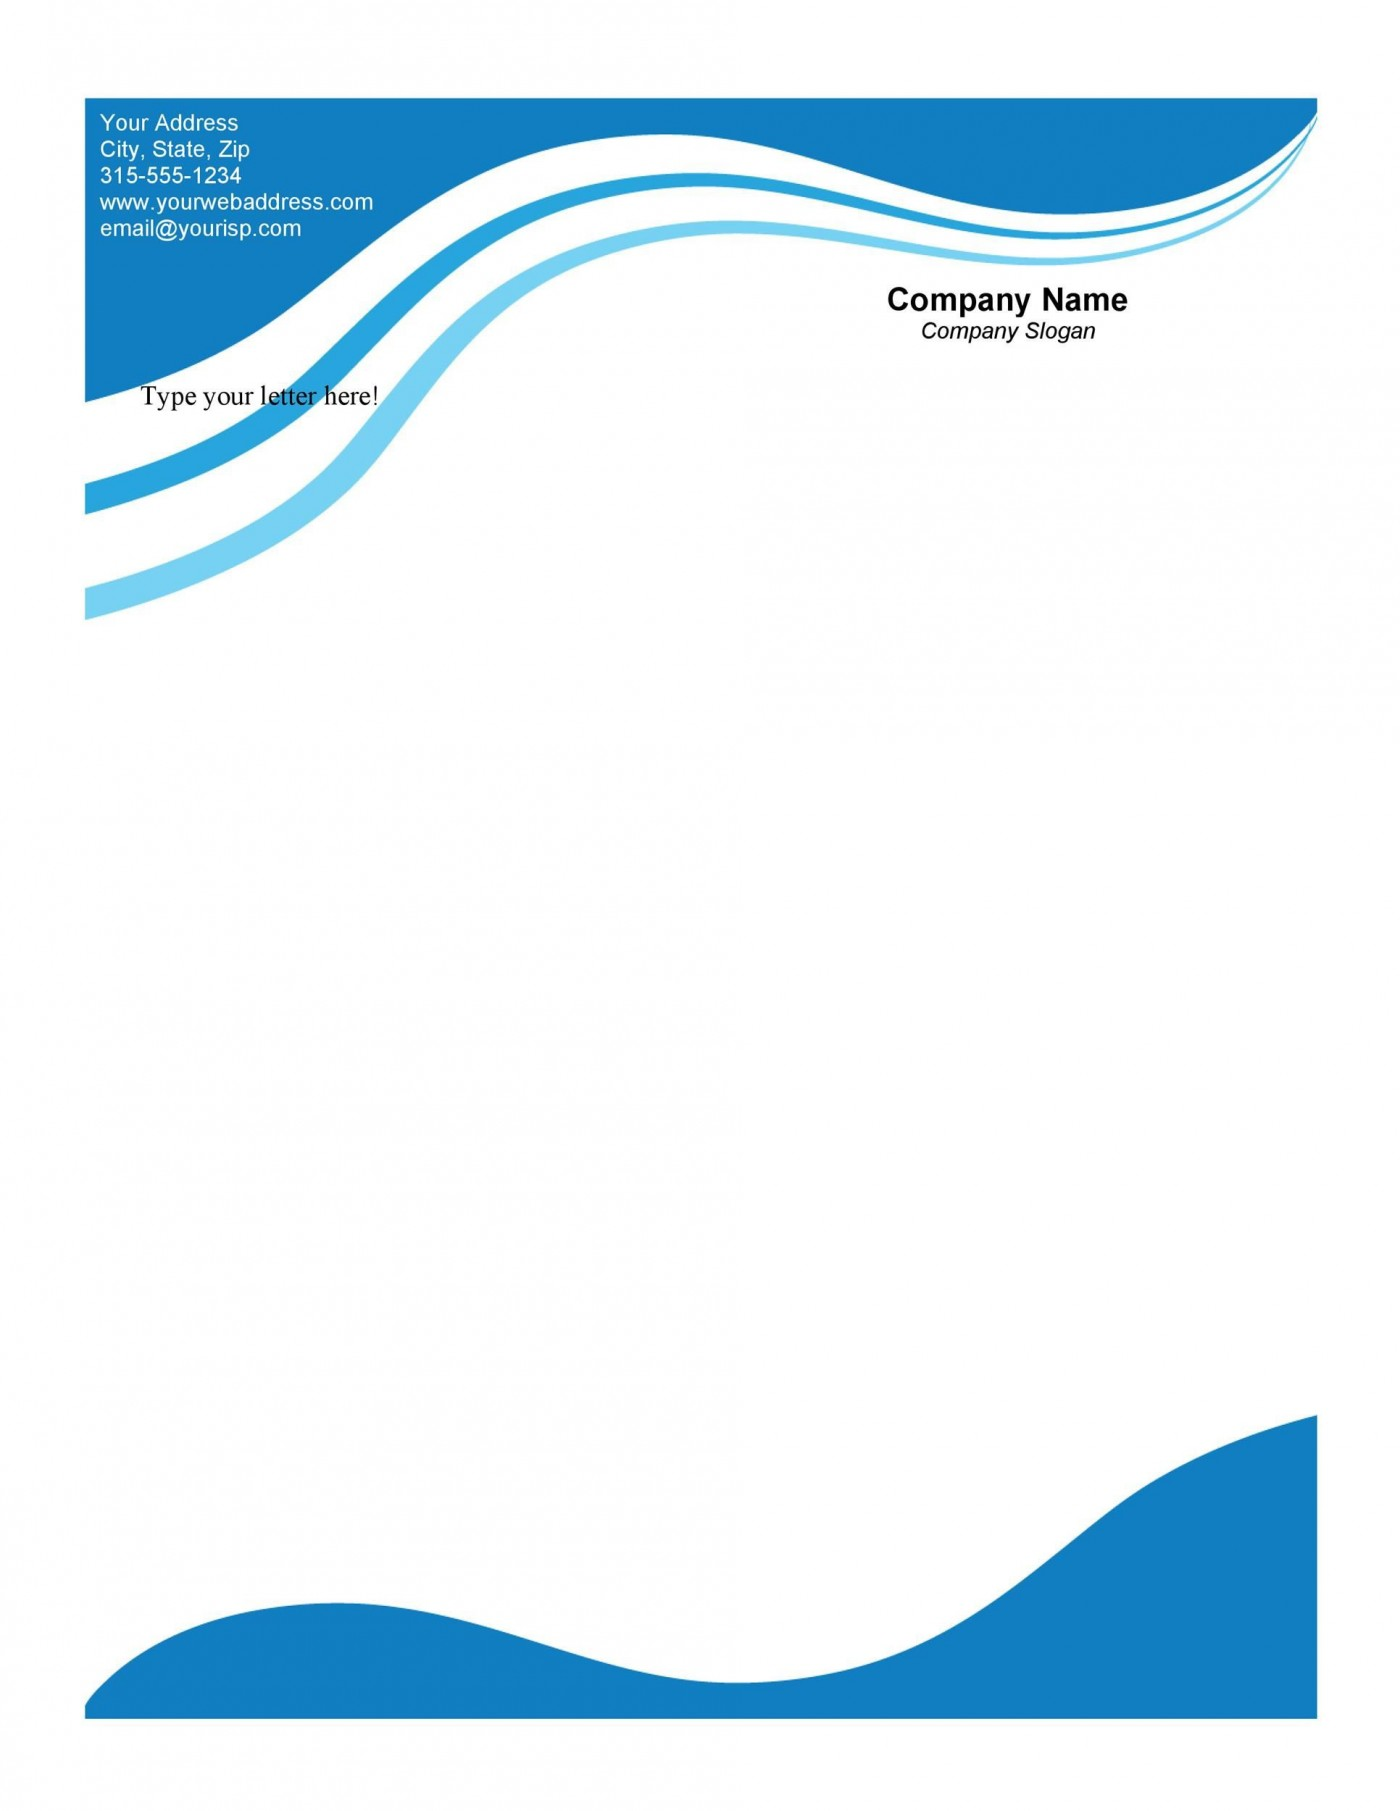 007 Excellent Letterhead Template Free Download Doc High Def  Company Format1400